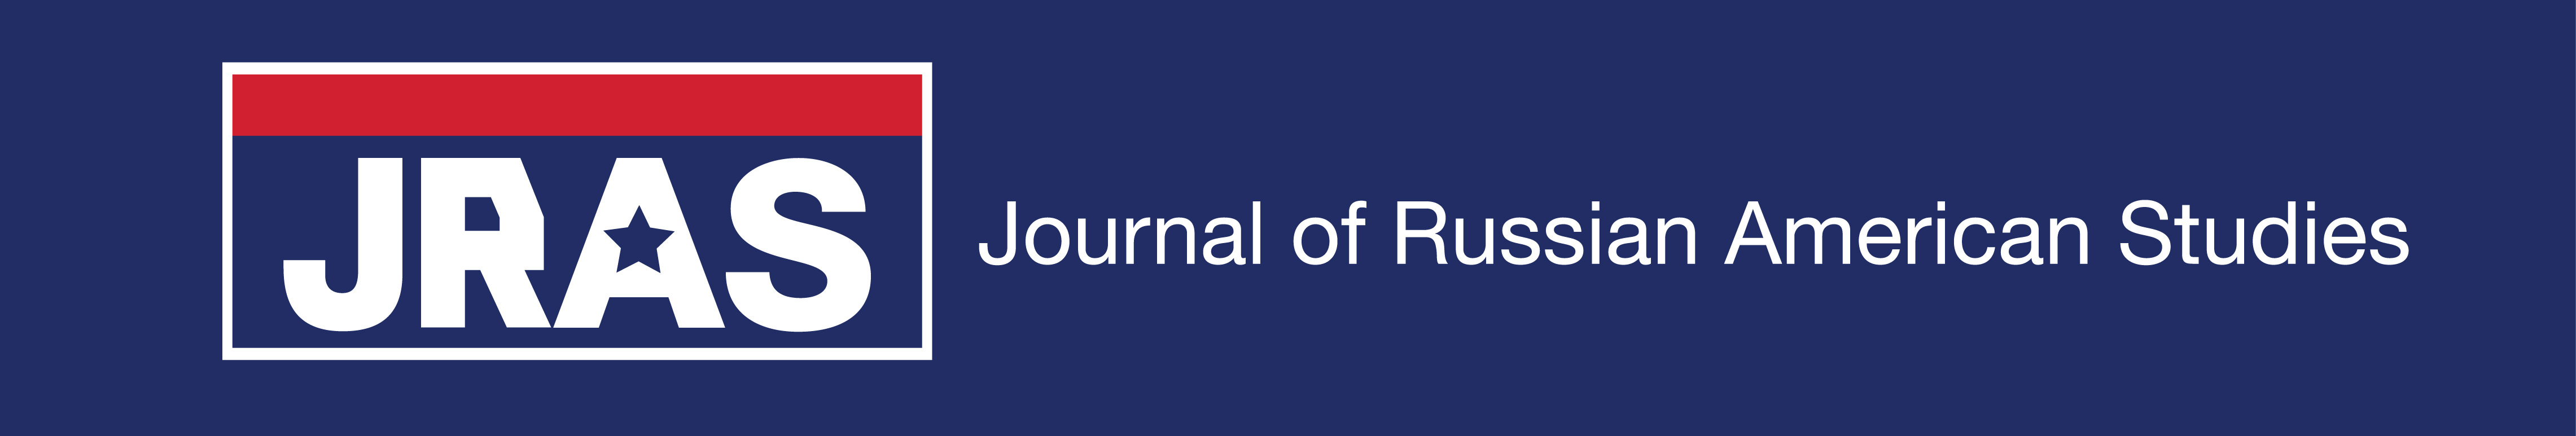 Journal of Russian American Studies logo